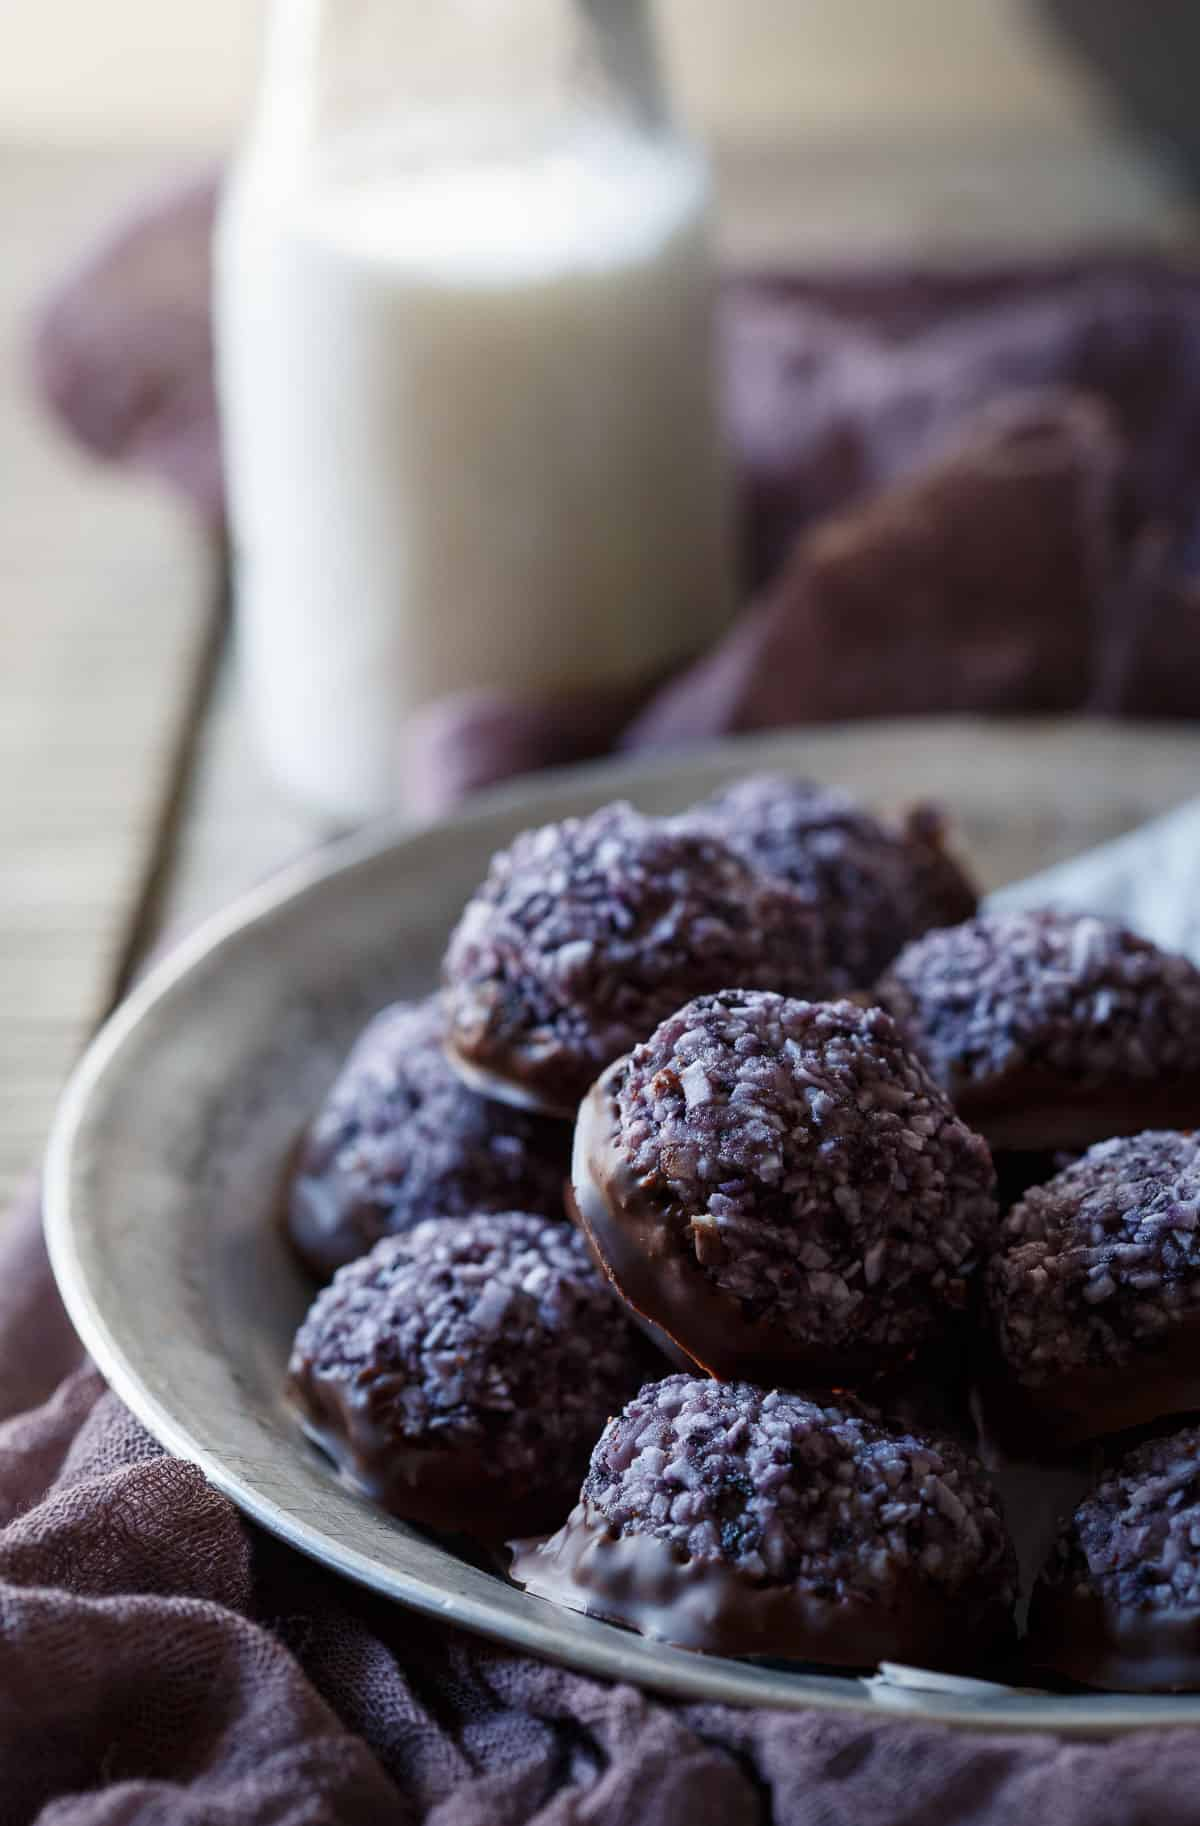 Paleo Blueberry Chocolate Macaroons are an easy treat to throw together for a quick paleo dessert!